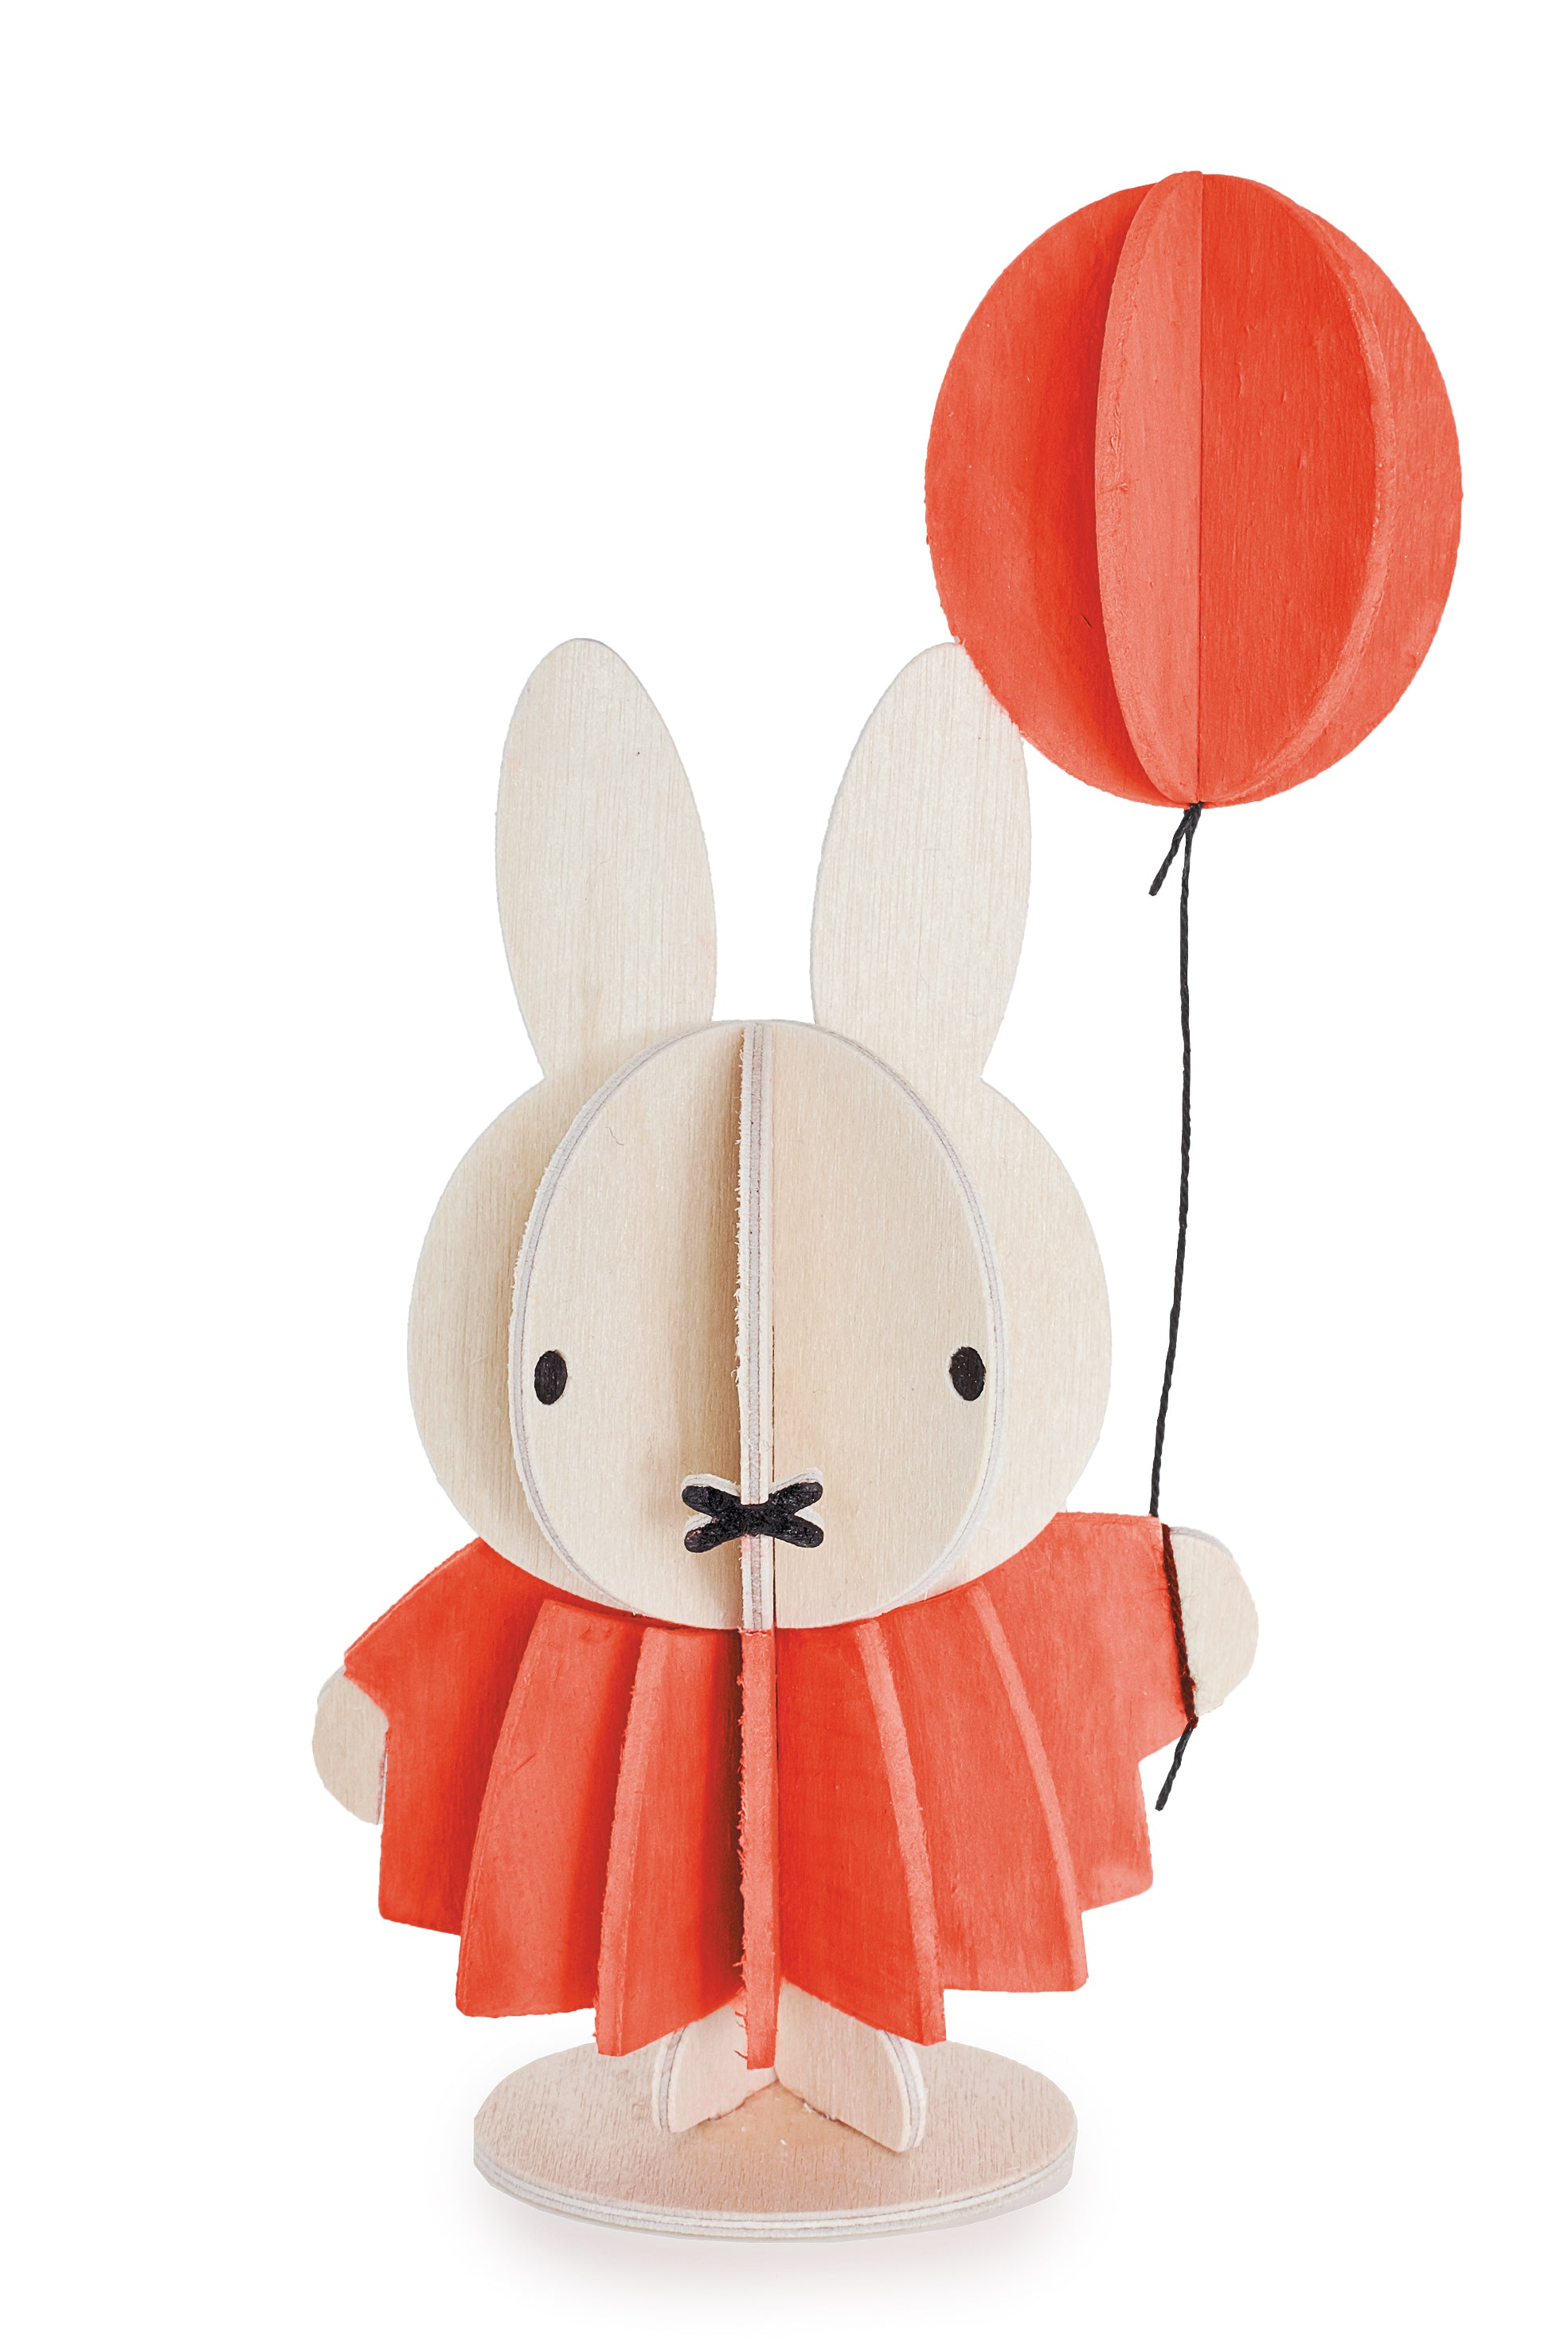 L Miffy & Balloon, Wood (13.5cm)